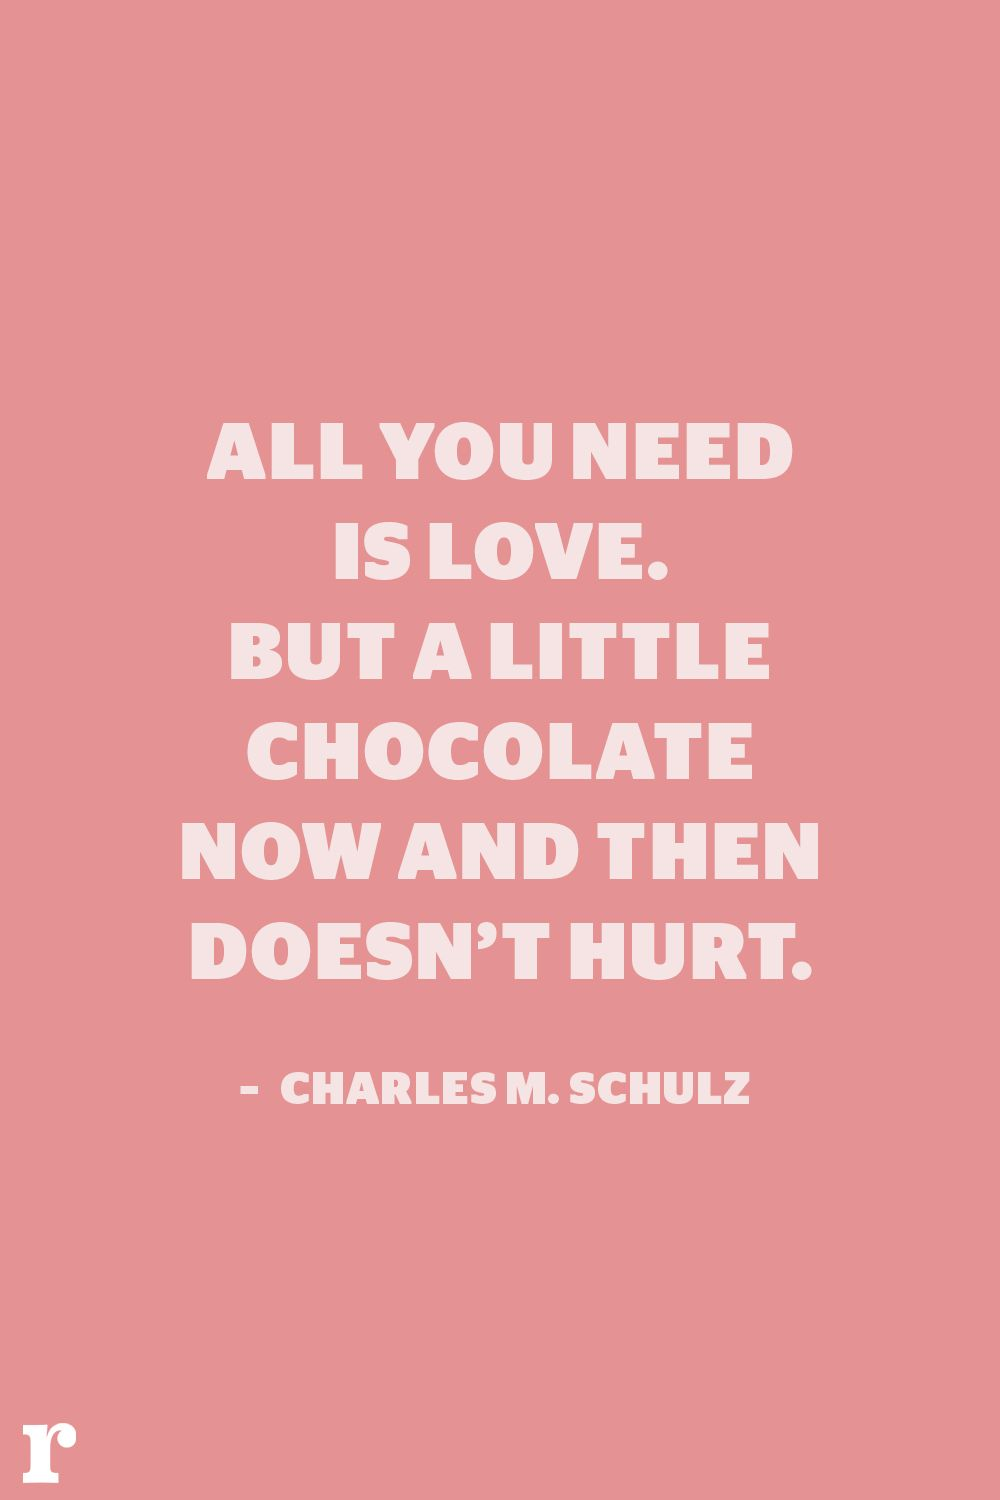 15 Funny Valentines Day Quotes Hilarious Love Quotes